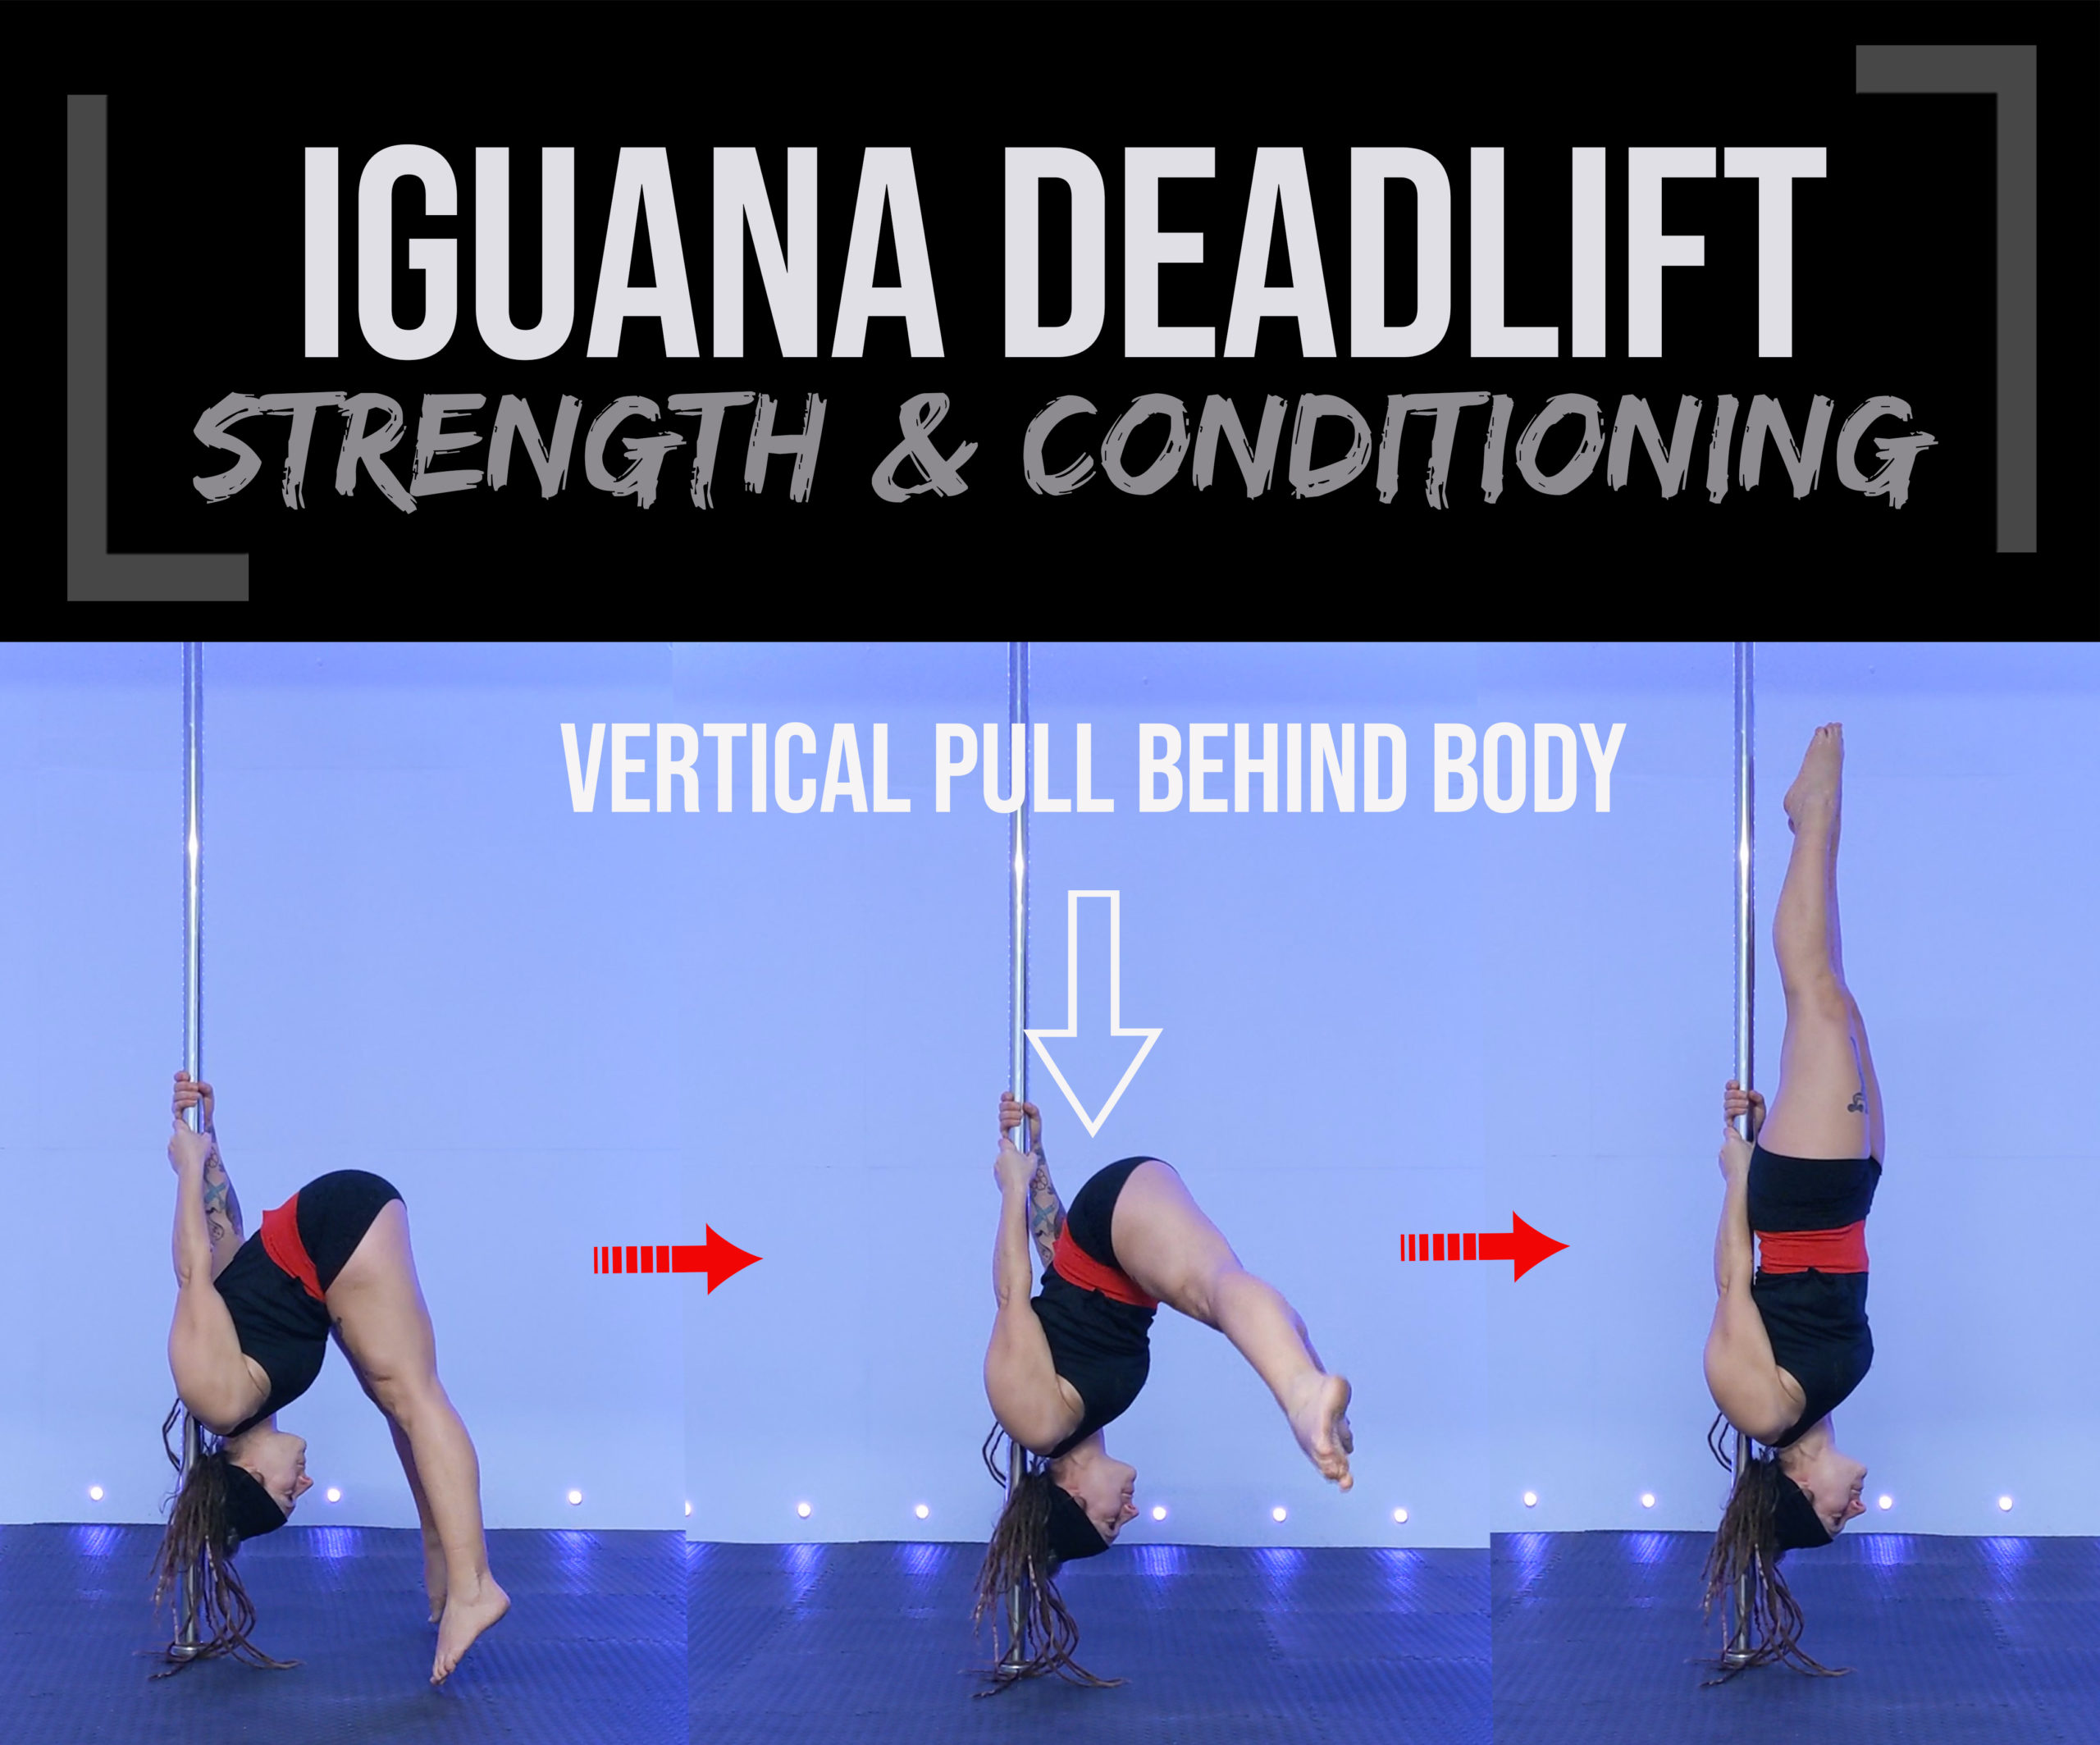 Iguana strength and conditioning